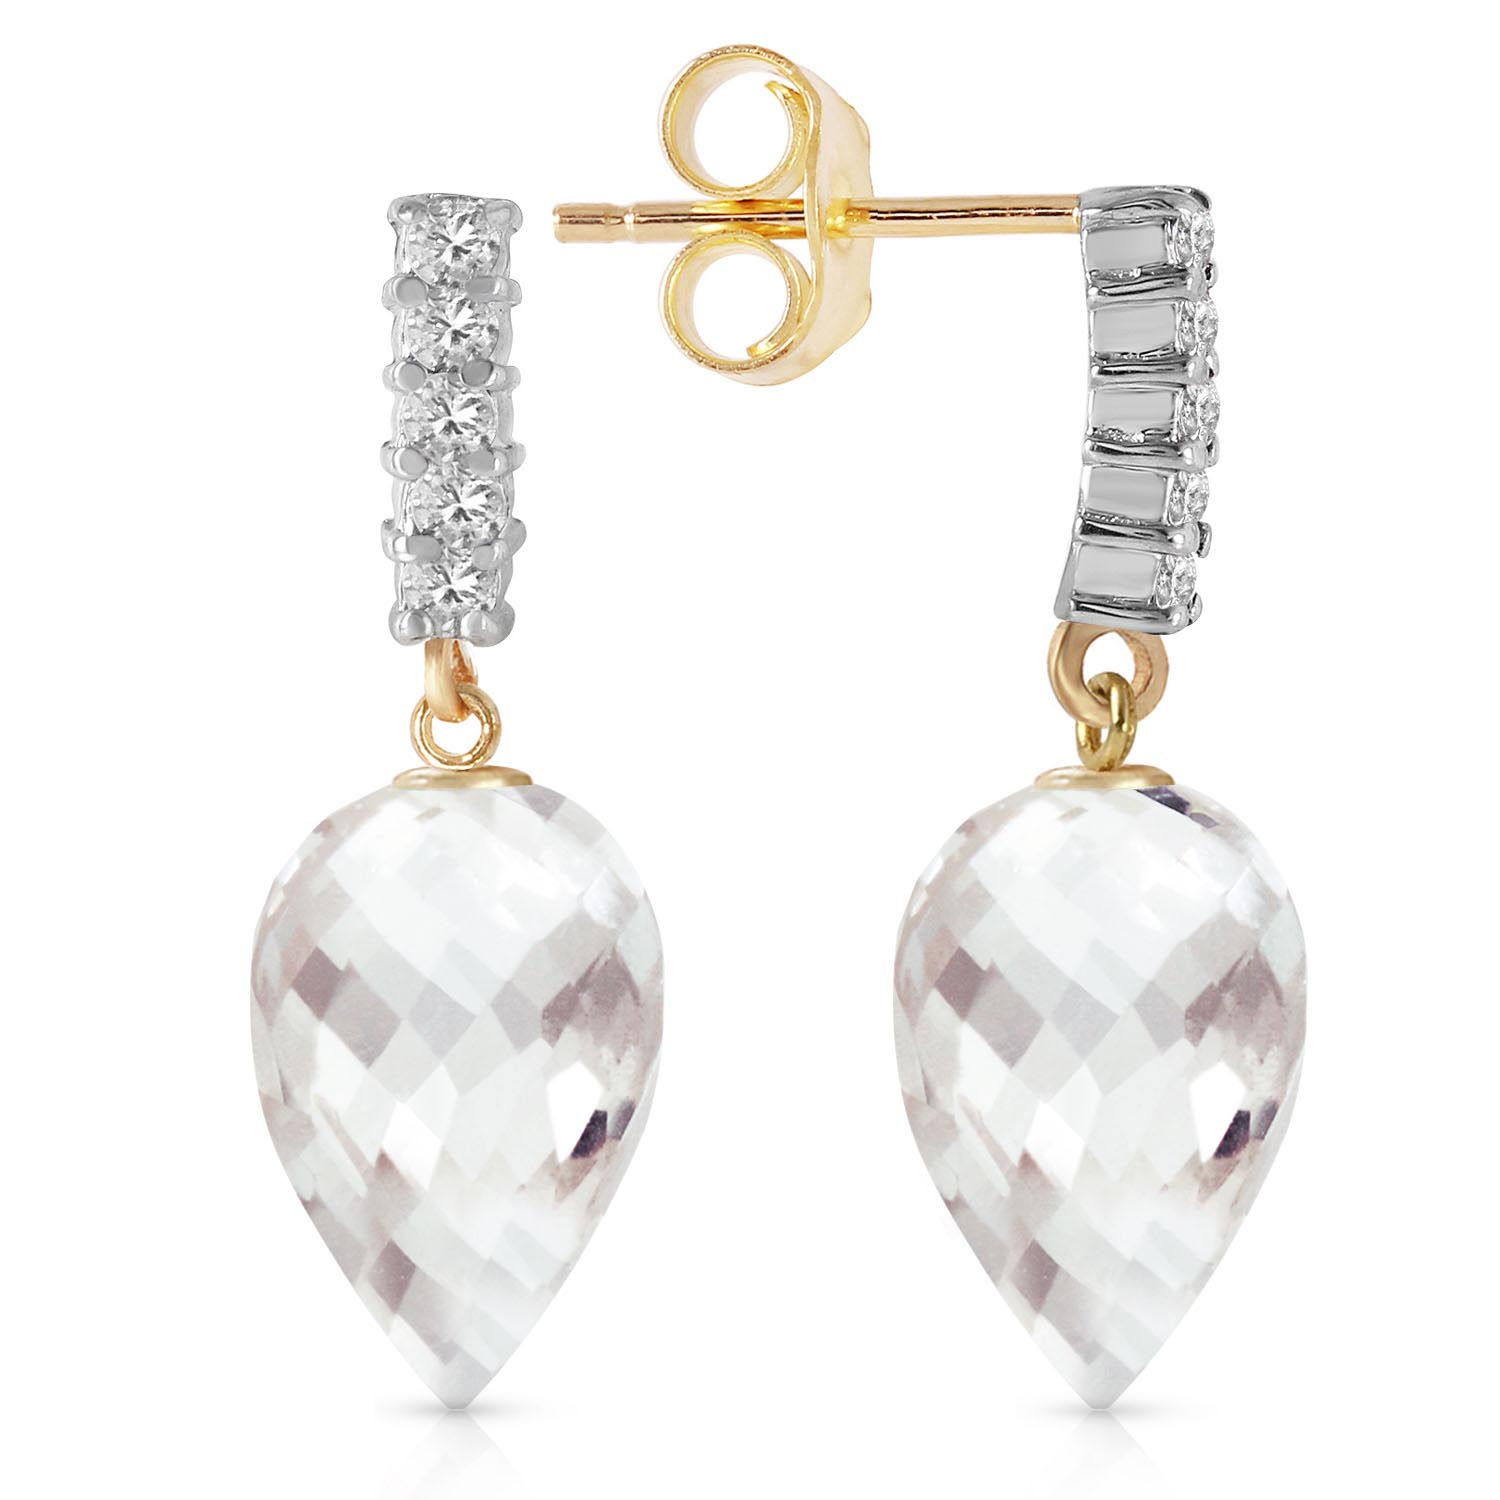 White Topaz & Diamond Stem Droplet Earrings in 9ct Gold